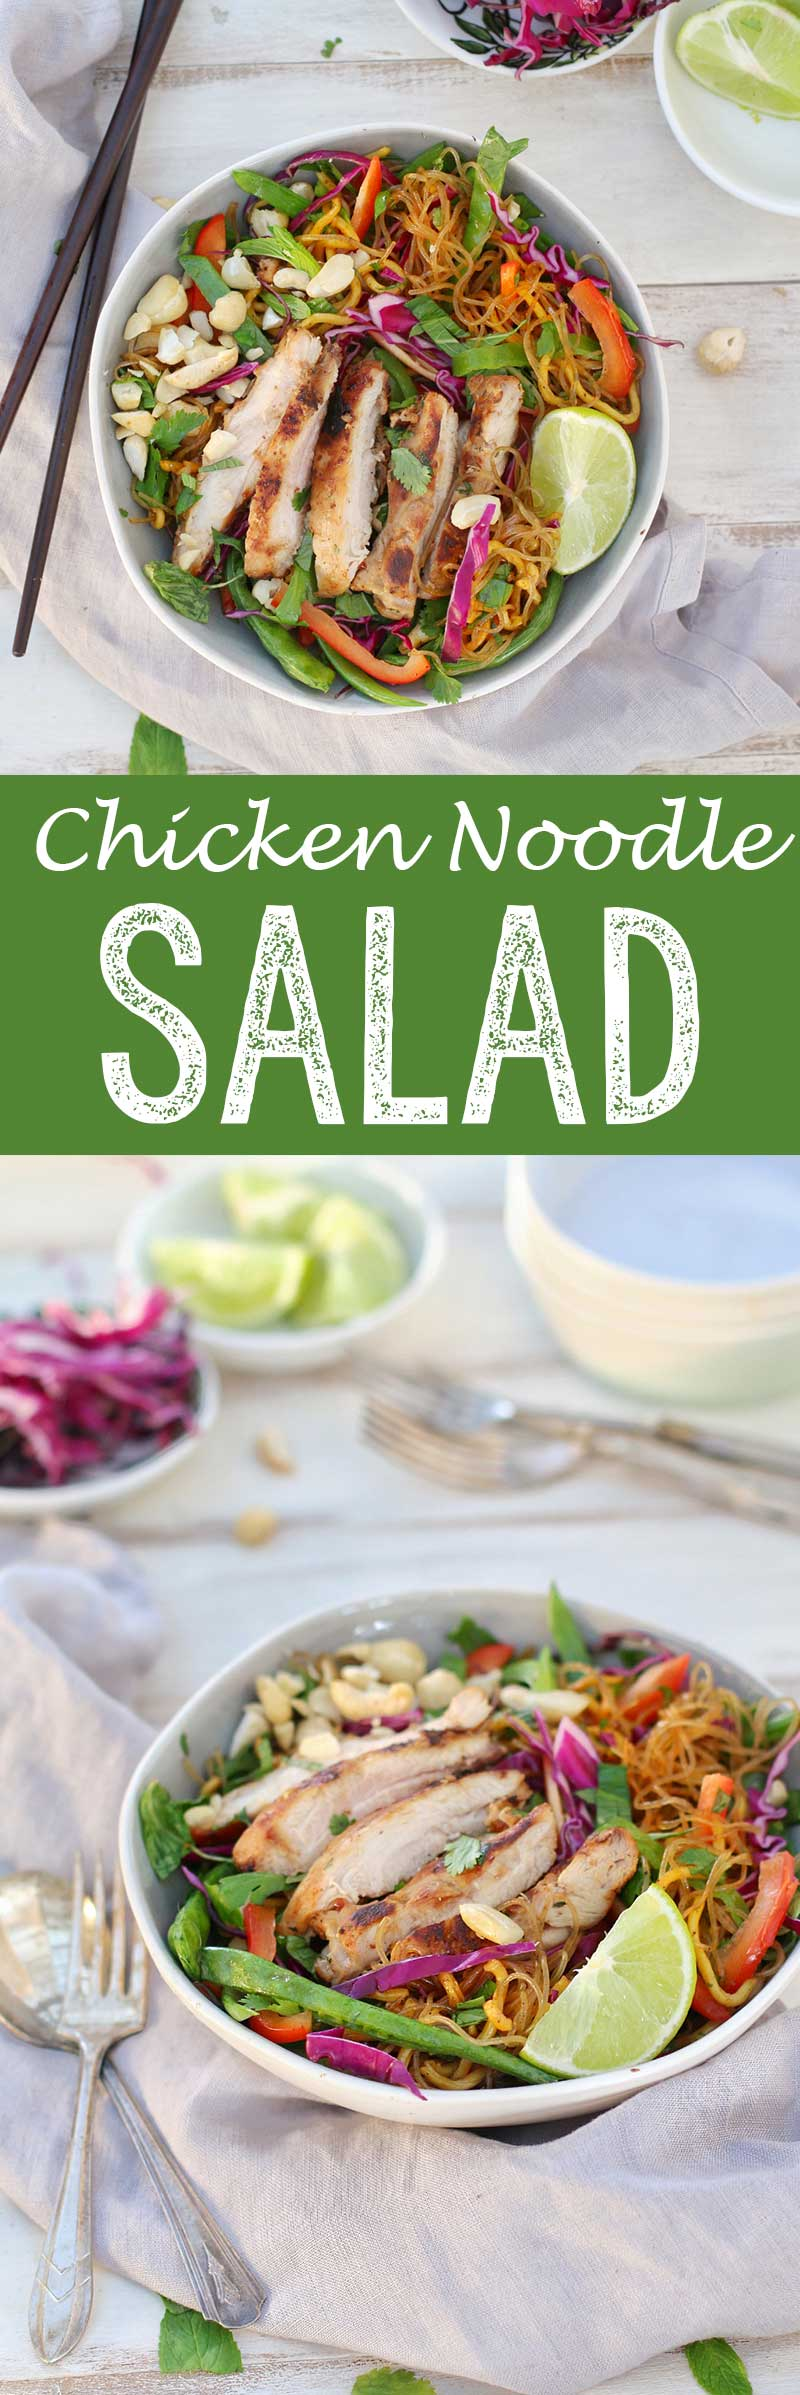 Chicken Noodle Salad. Moist chicken, flavorful noodles, and plenty of veggies.